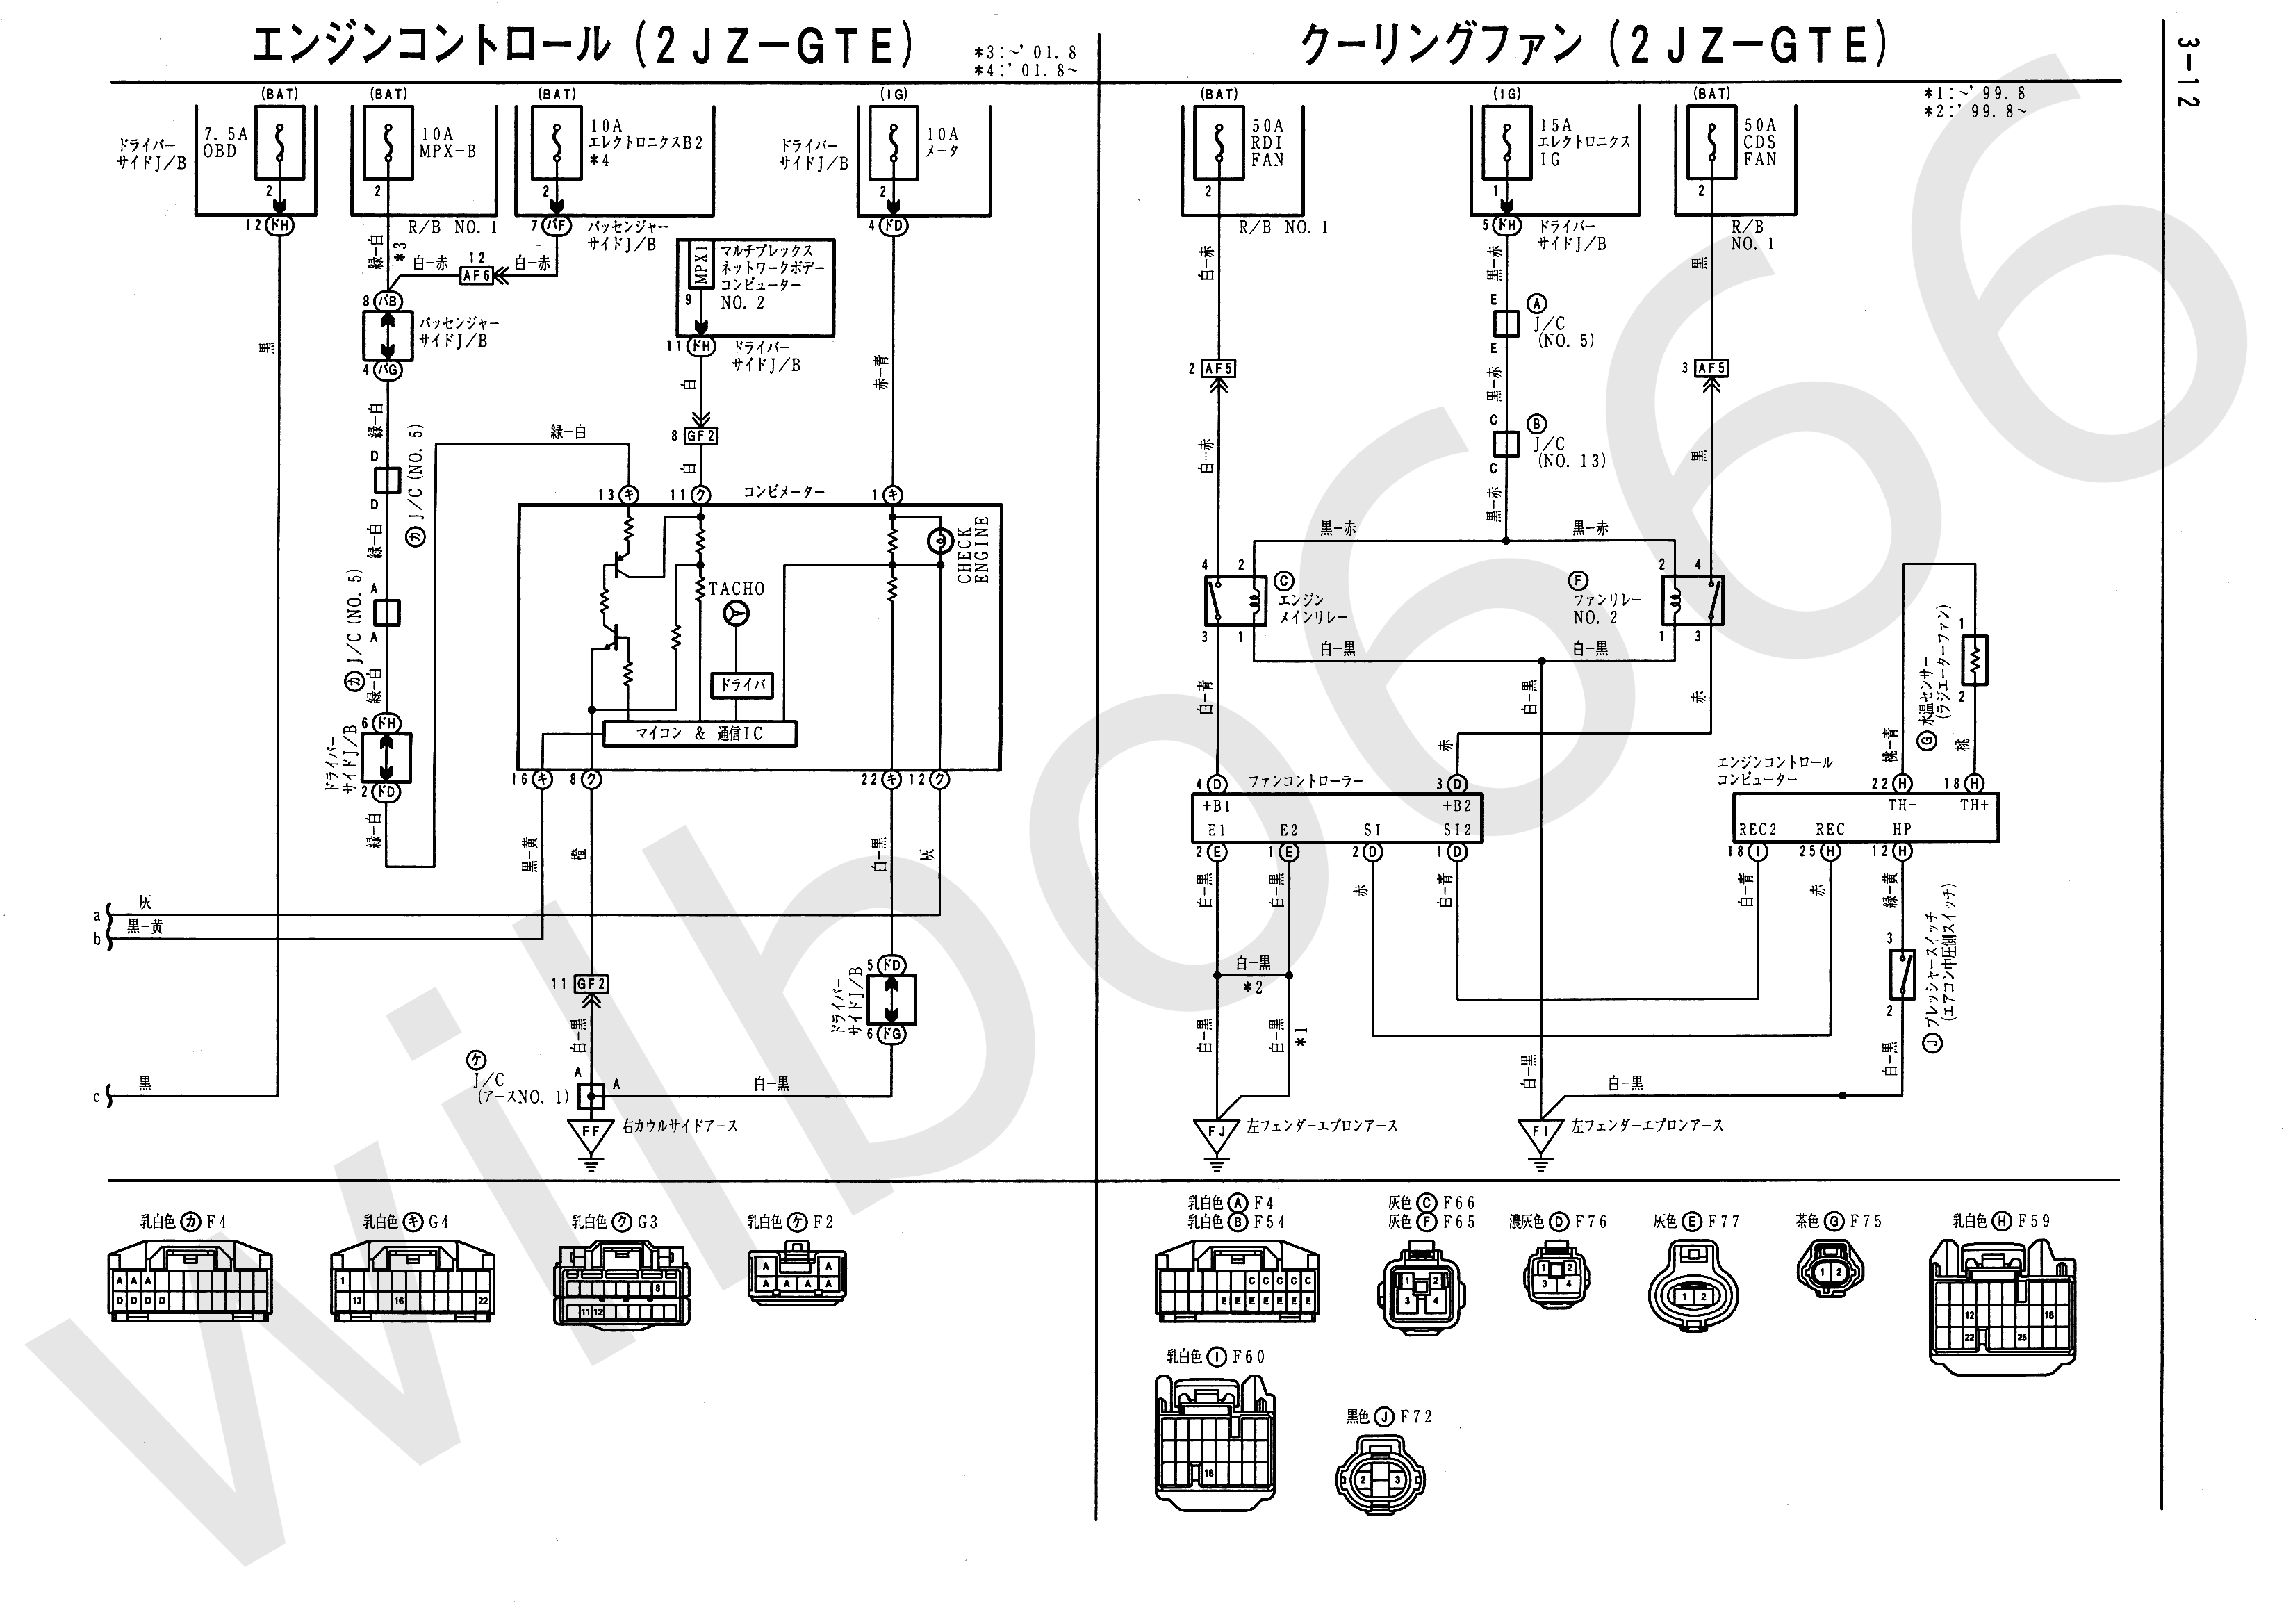 JZS161 Electrical Wiring Diagram 6748505 3 12?resize\\\=665%2C471 ge motor 1940s vintage wiring question on ge motor wiring diagram ge ecm x13 motor wiring diagram at nearapp.co